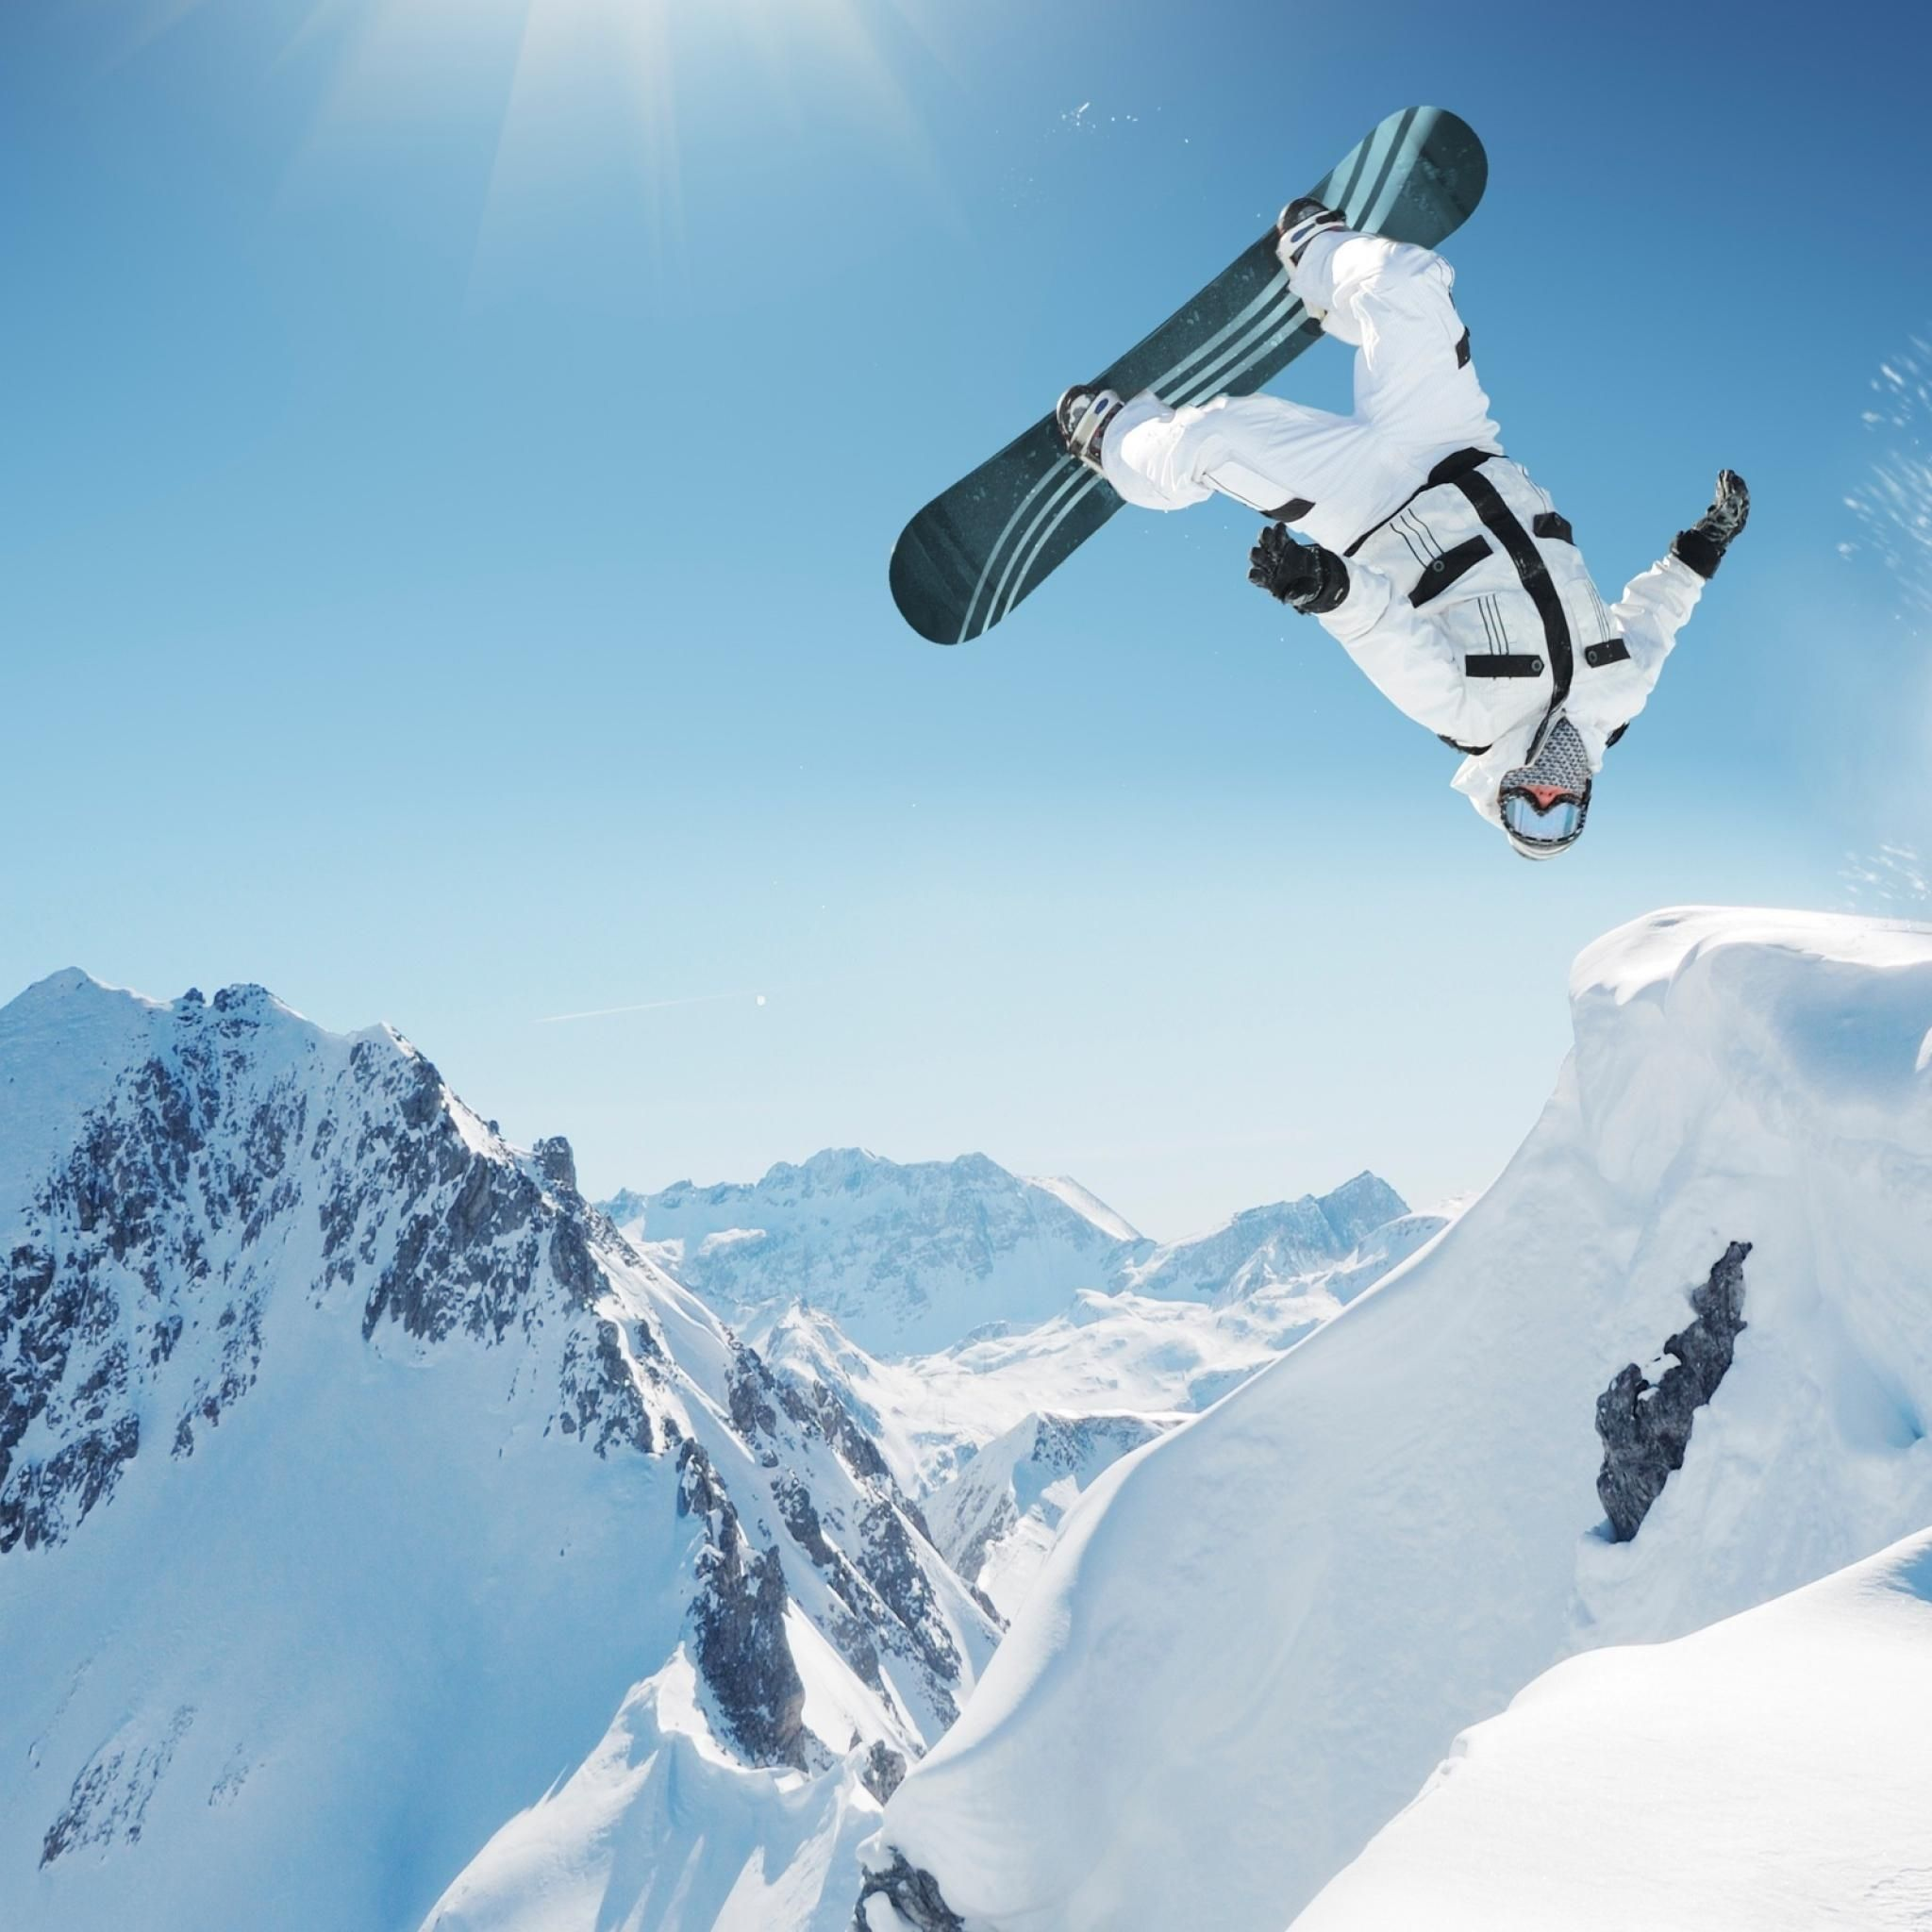 2048x2048 Snowboarding iPad Wallpaper HD #iPad #wallpaper | Wallpaper ...